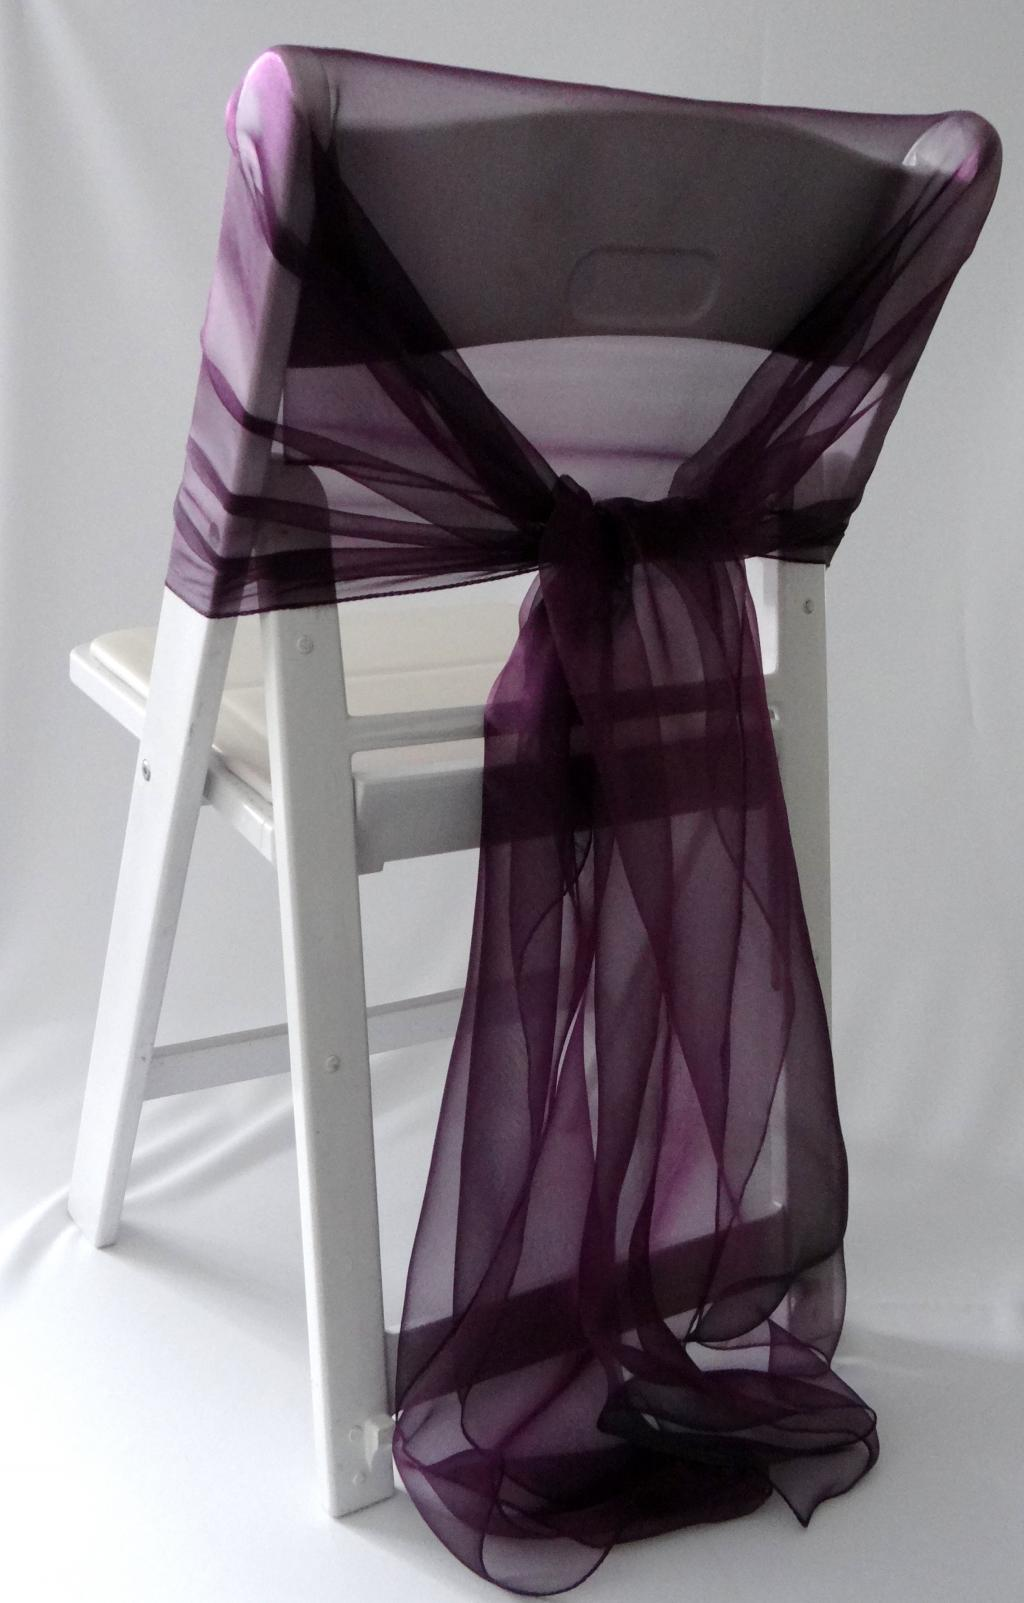 lux diy folding chair covers with purple ribbons – Home Inspiring